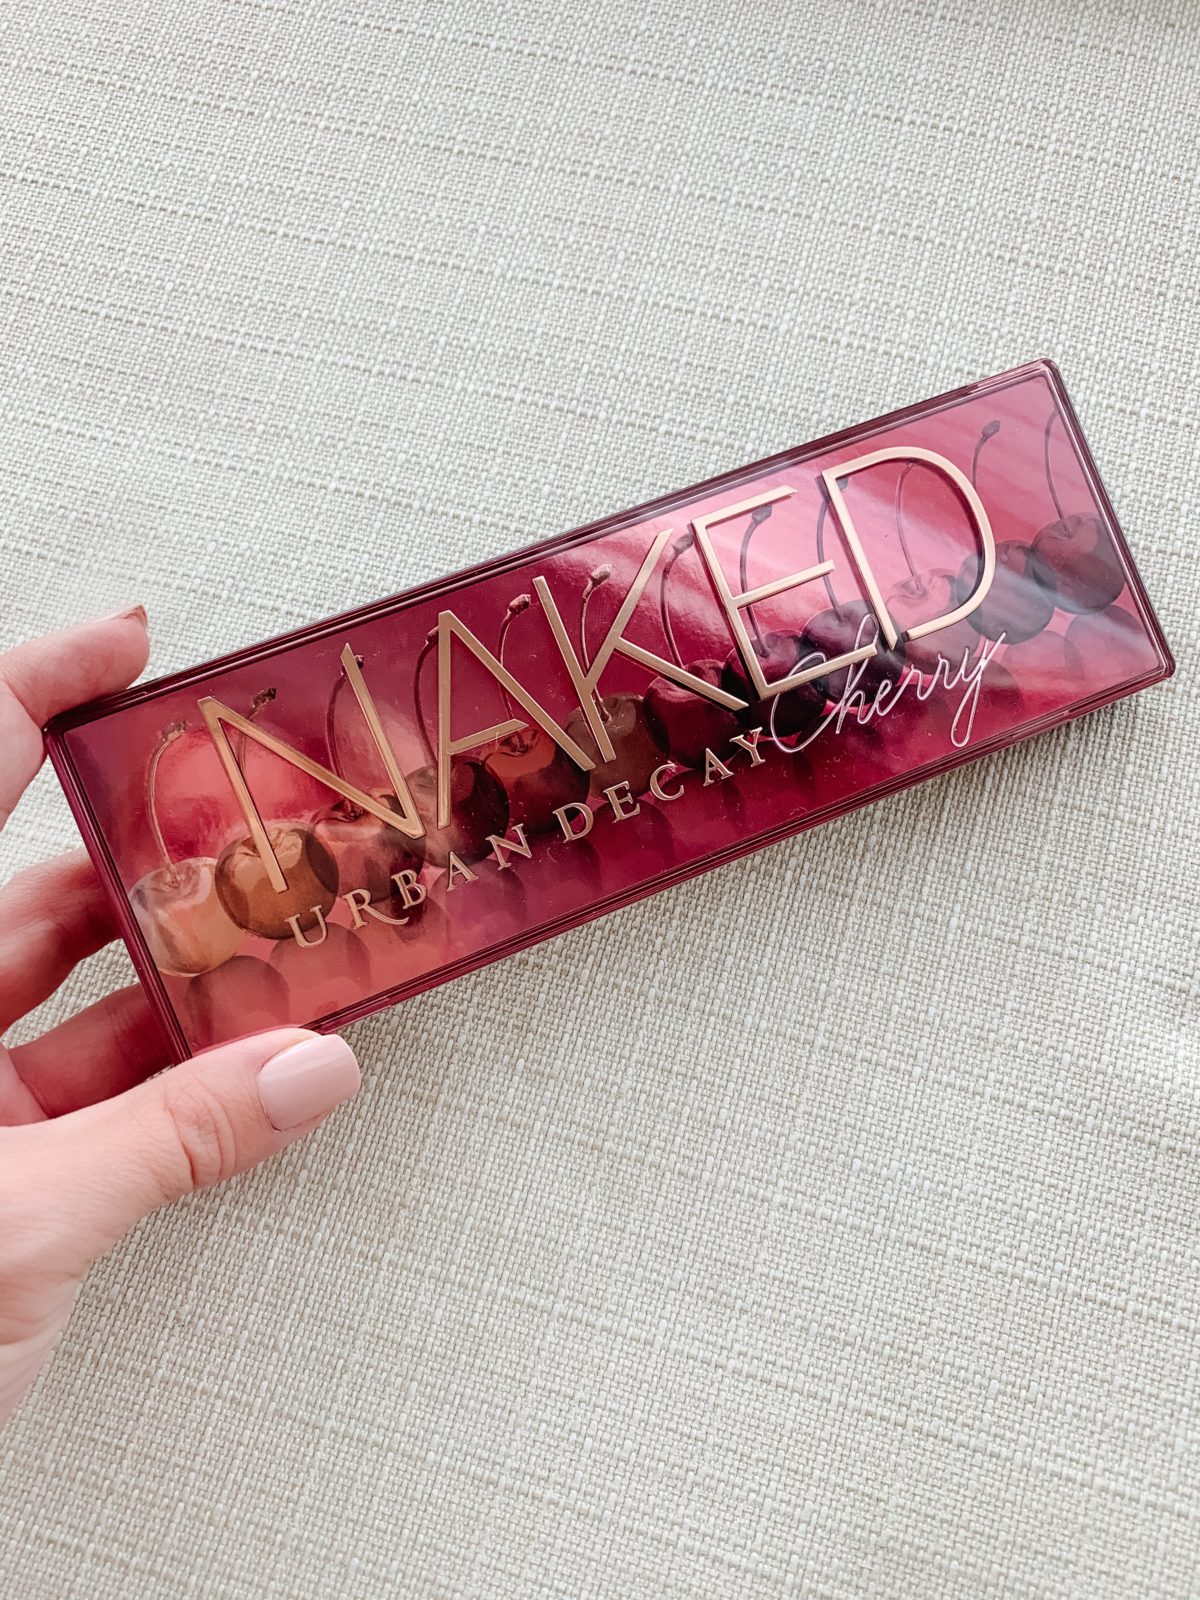 Naked Eye Shadow Palette